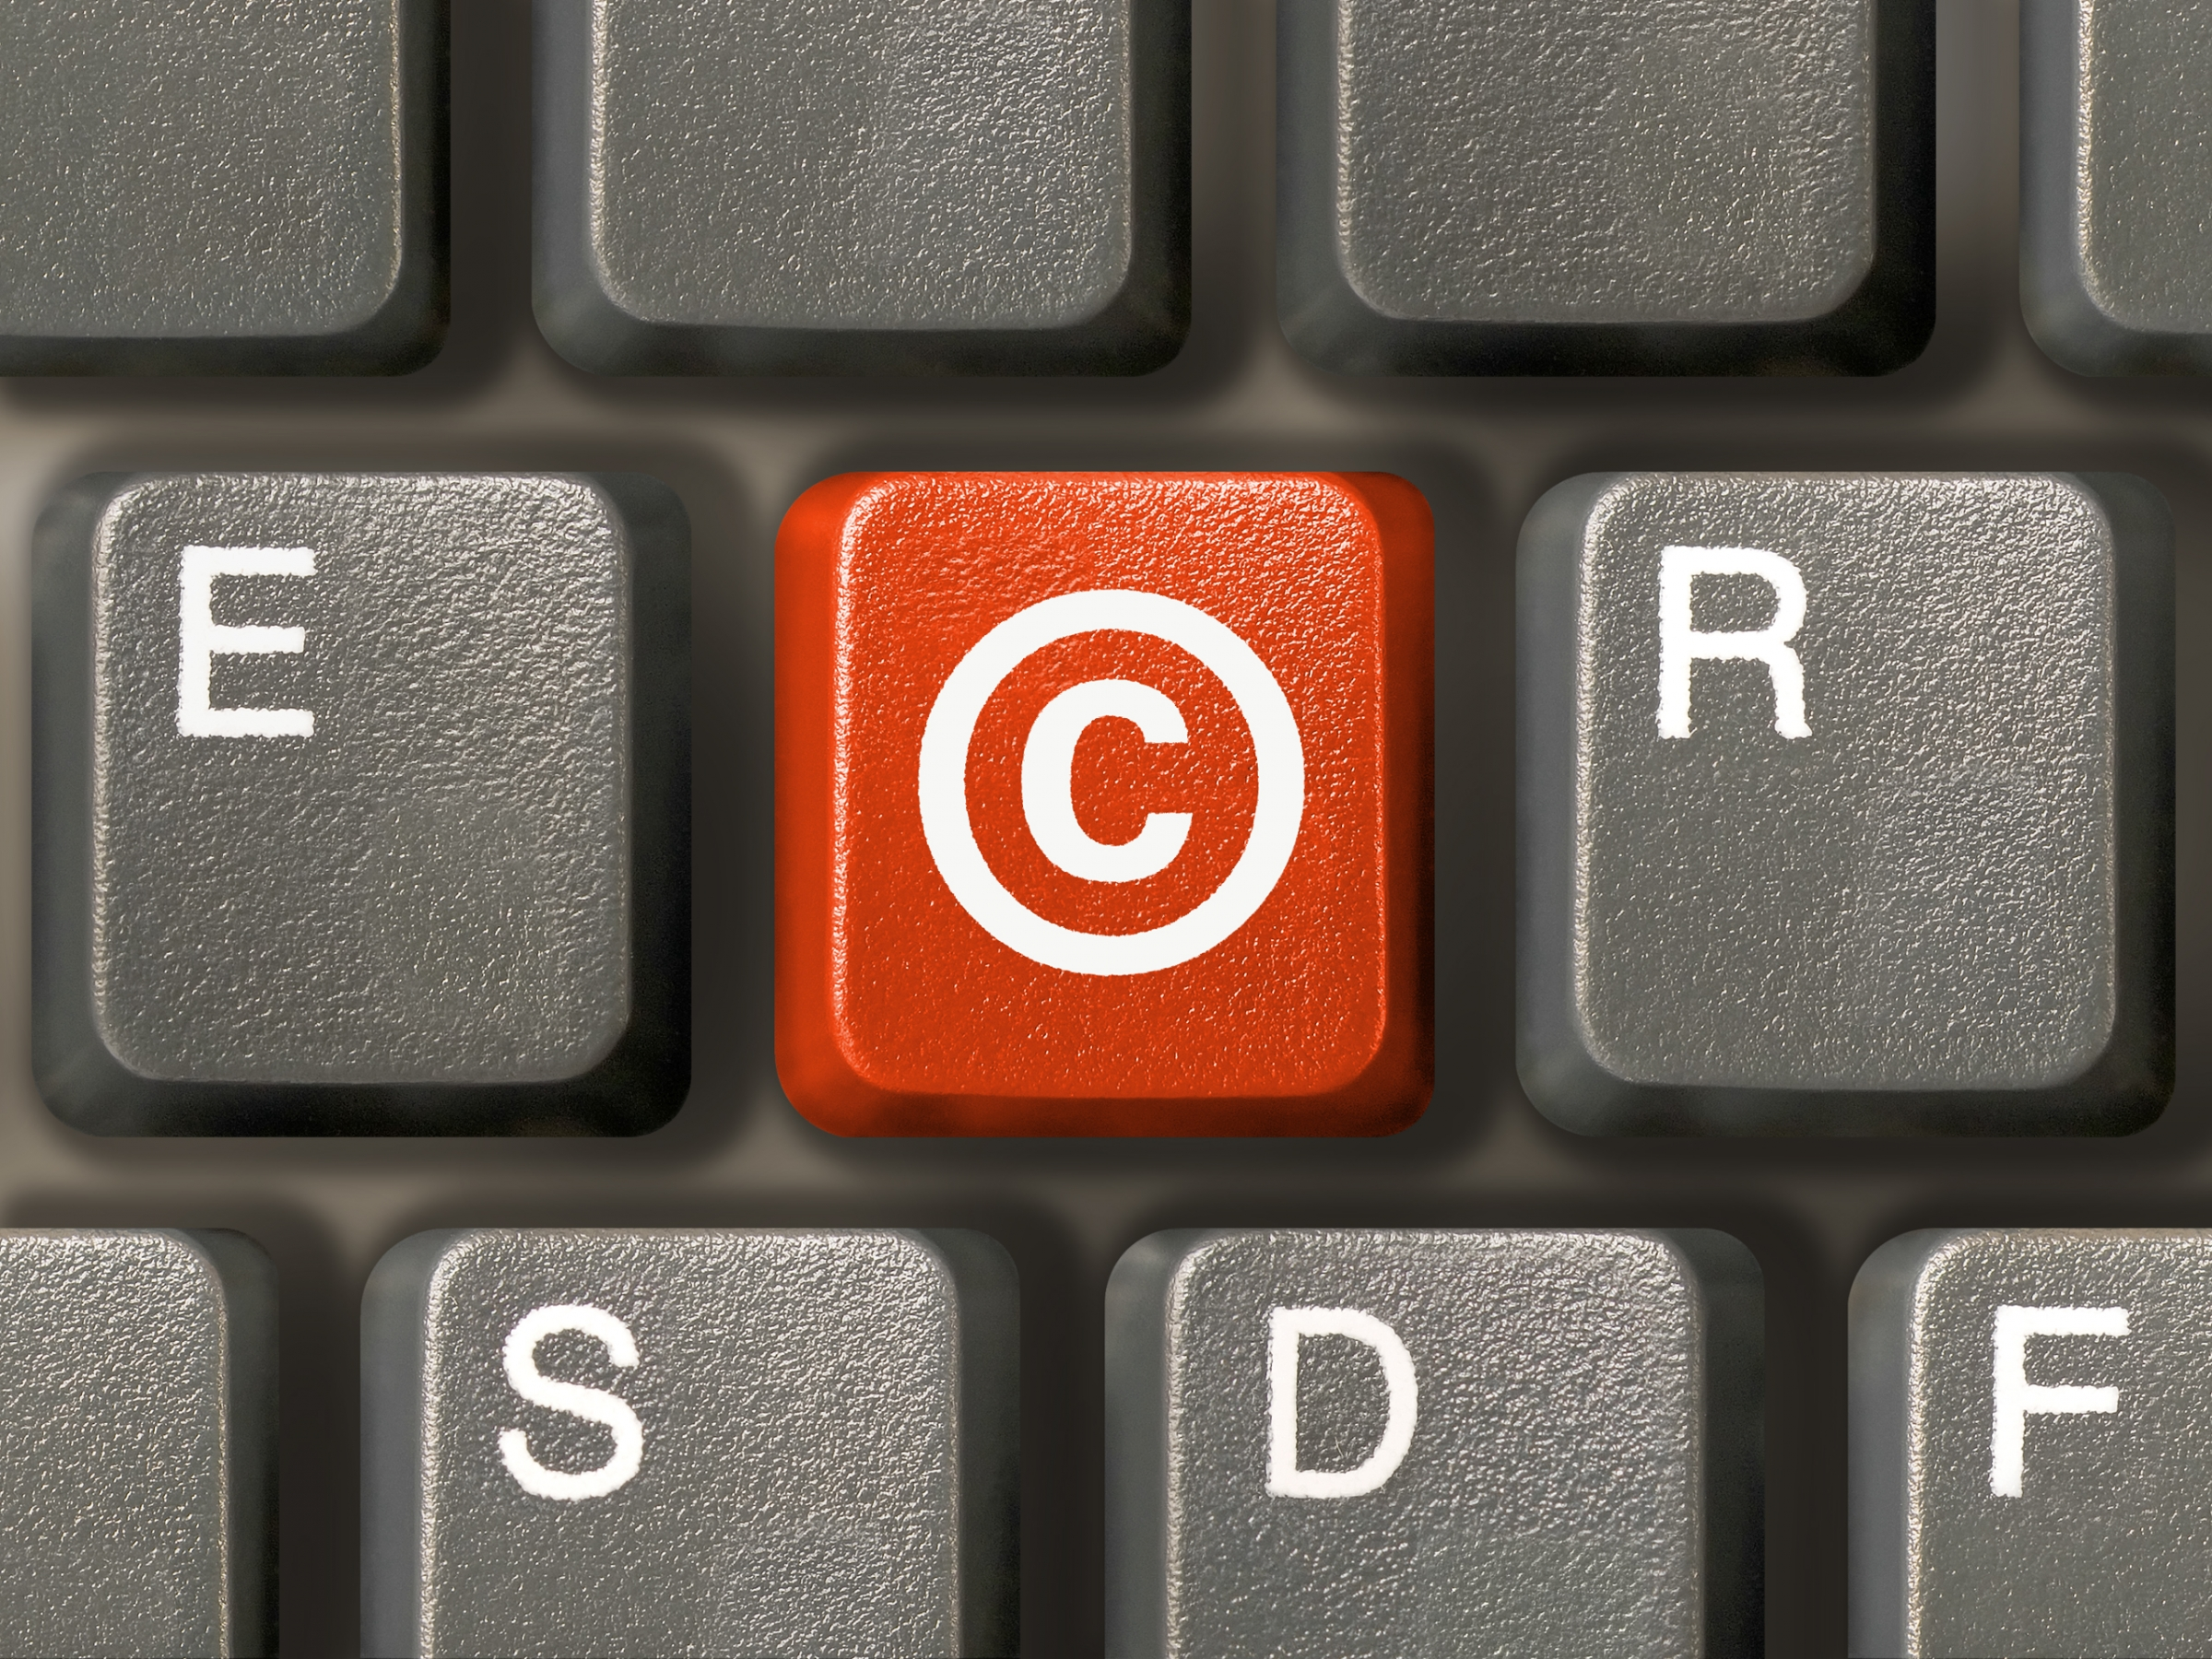 Copyright law is one step closer to 21st century